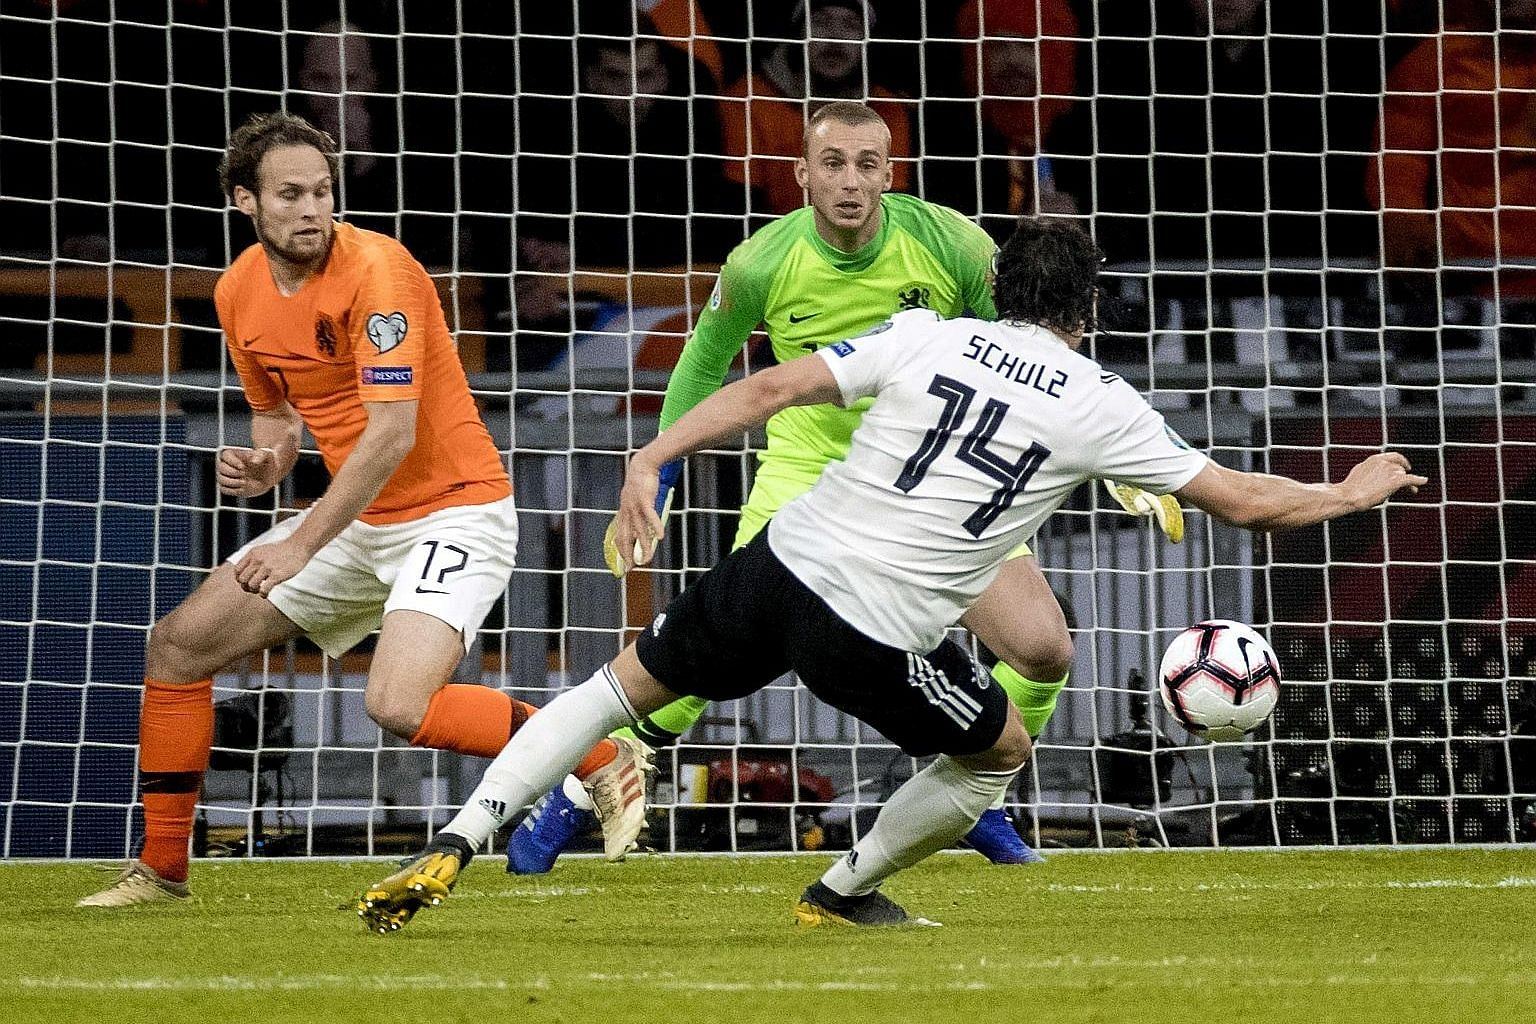 Germany defender Nico Schulz scoring the winner in the 3-2 victory over the Netherlands in Amsterdam on Sunday to start their Euro 2020 Group C qualifiers on a positive note.